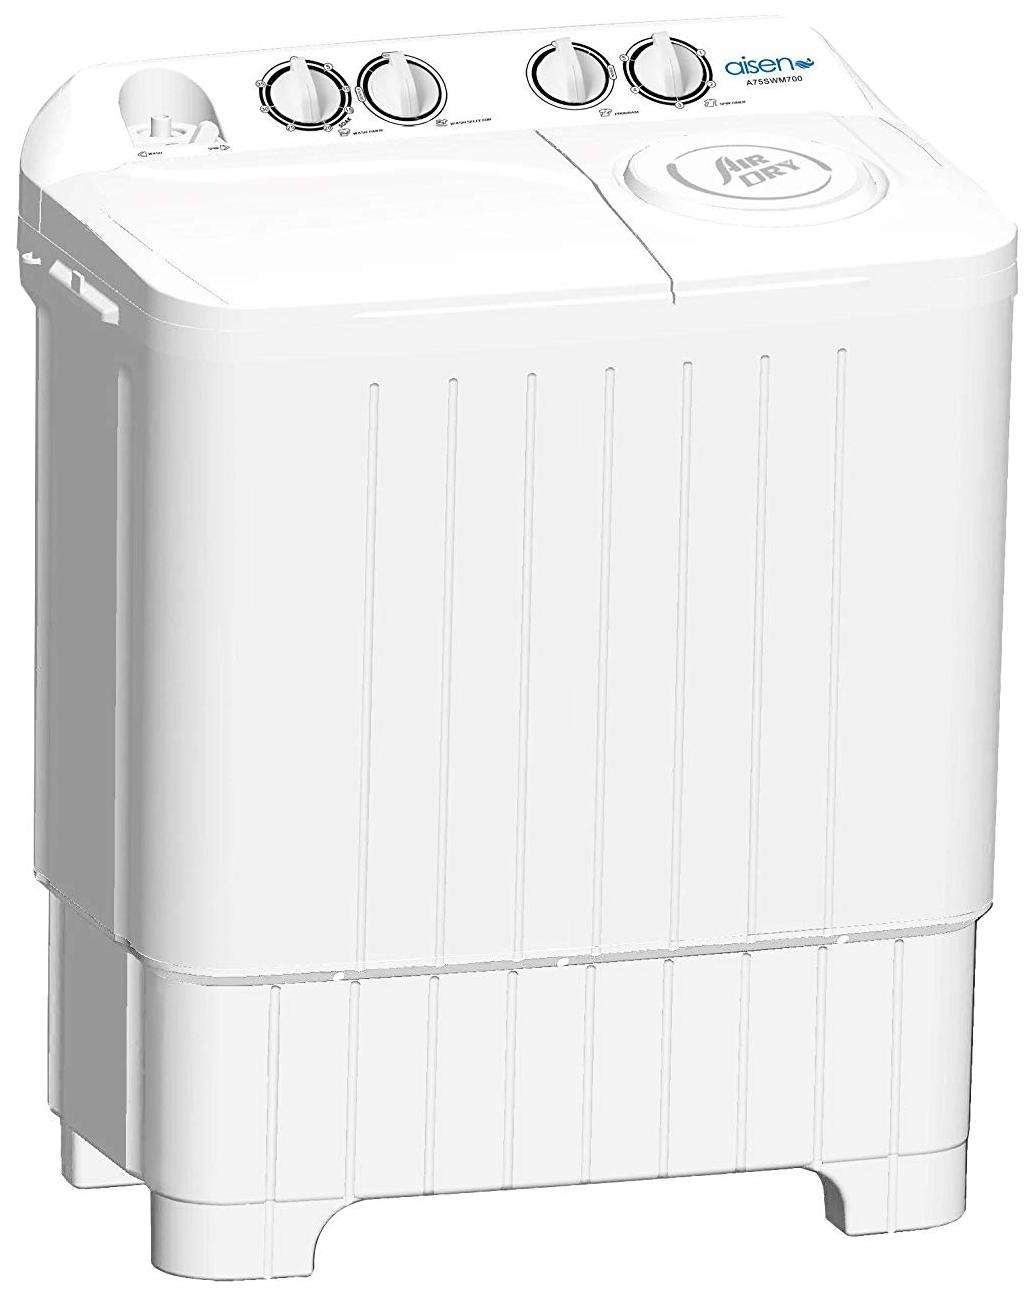 Aisen 7.5 kg Semi Automatic Top Load Washing Machine (A75SWM700-W, White)